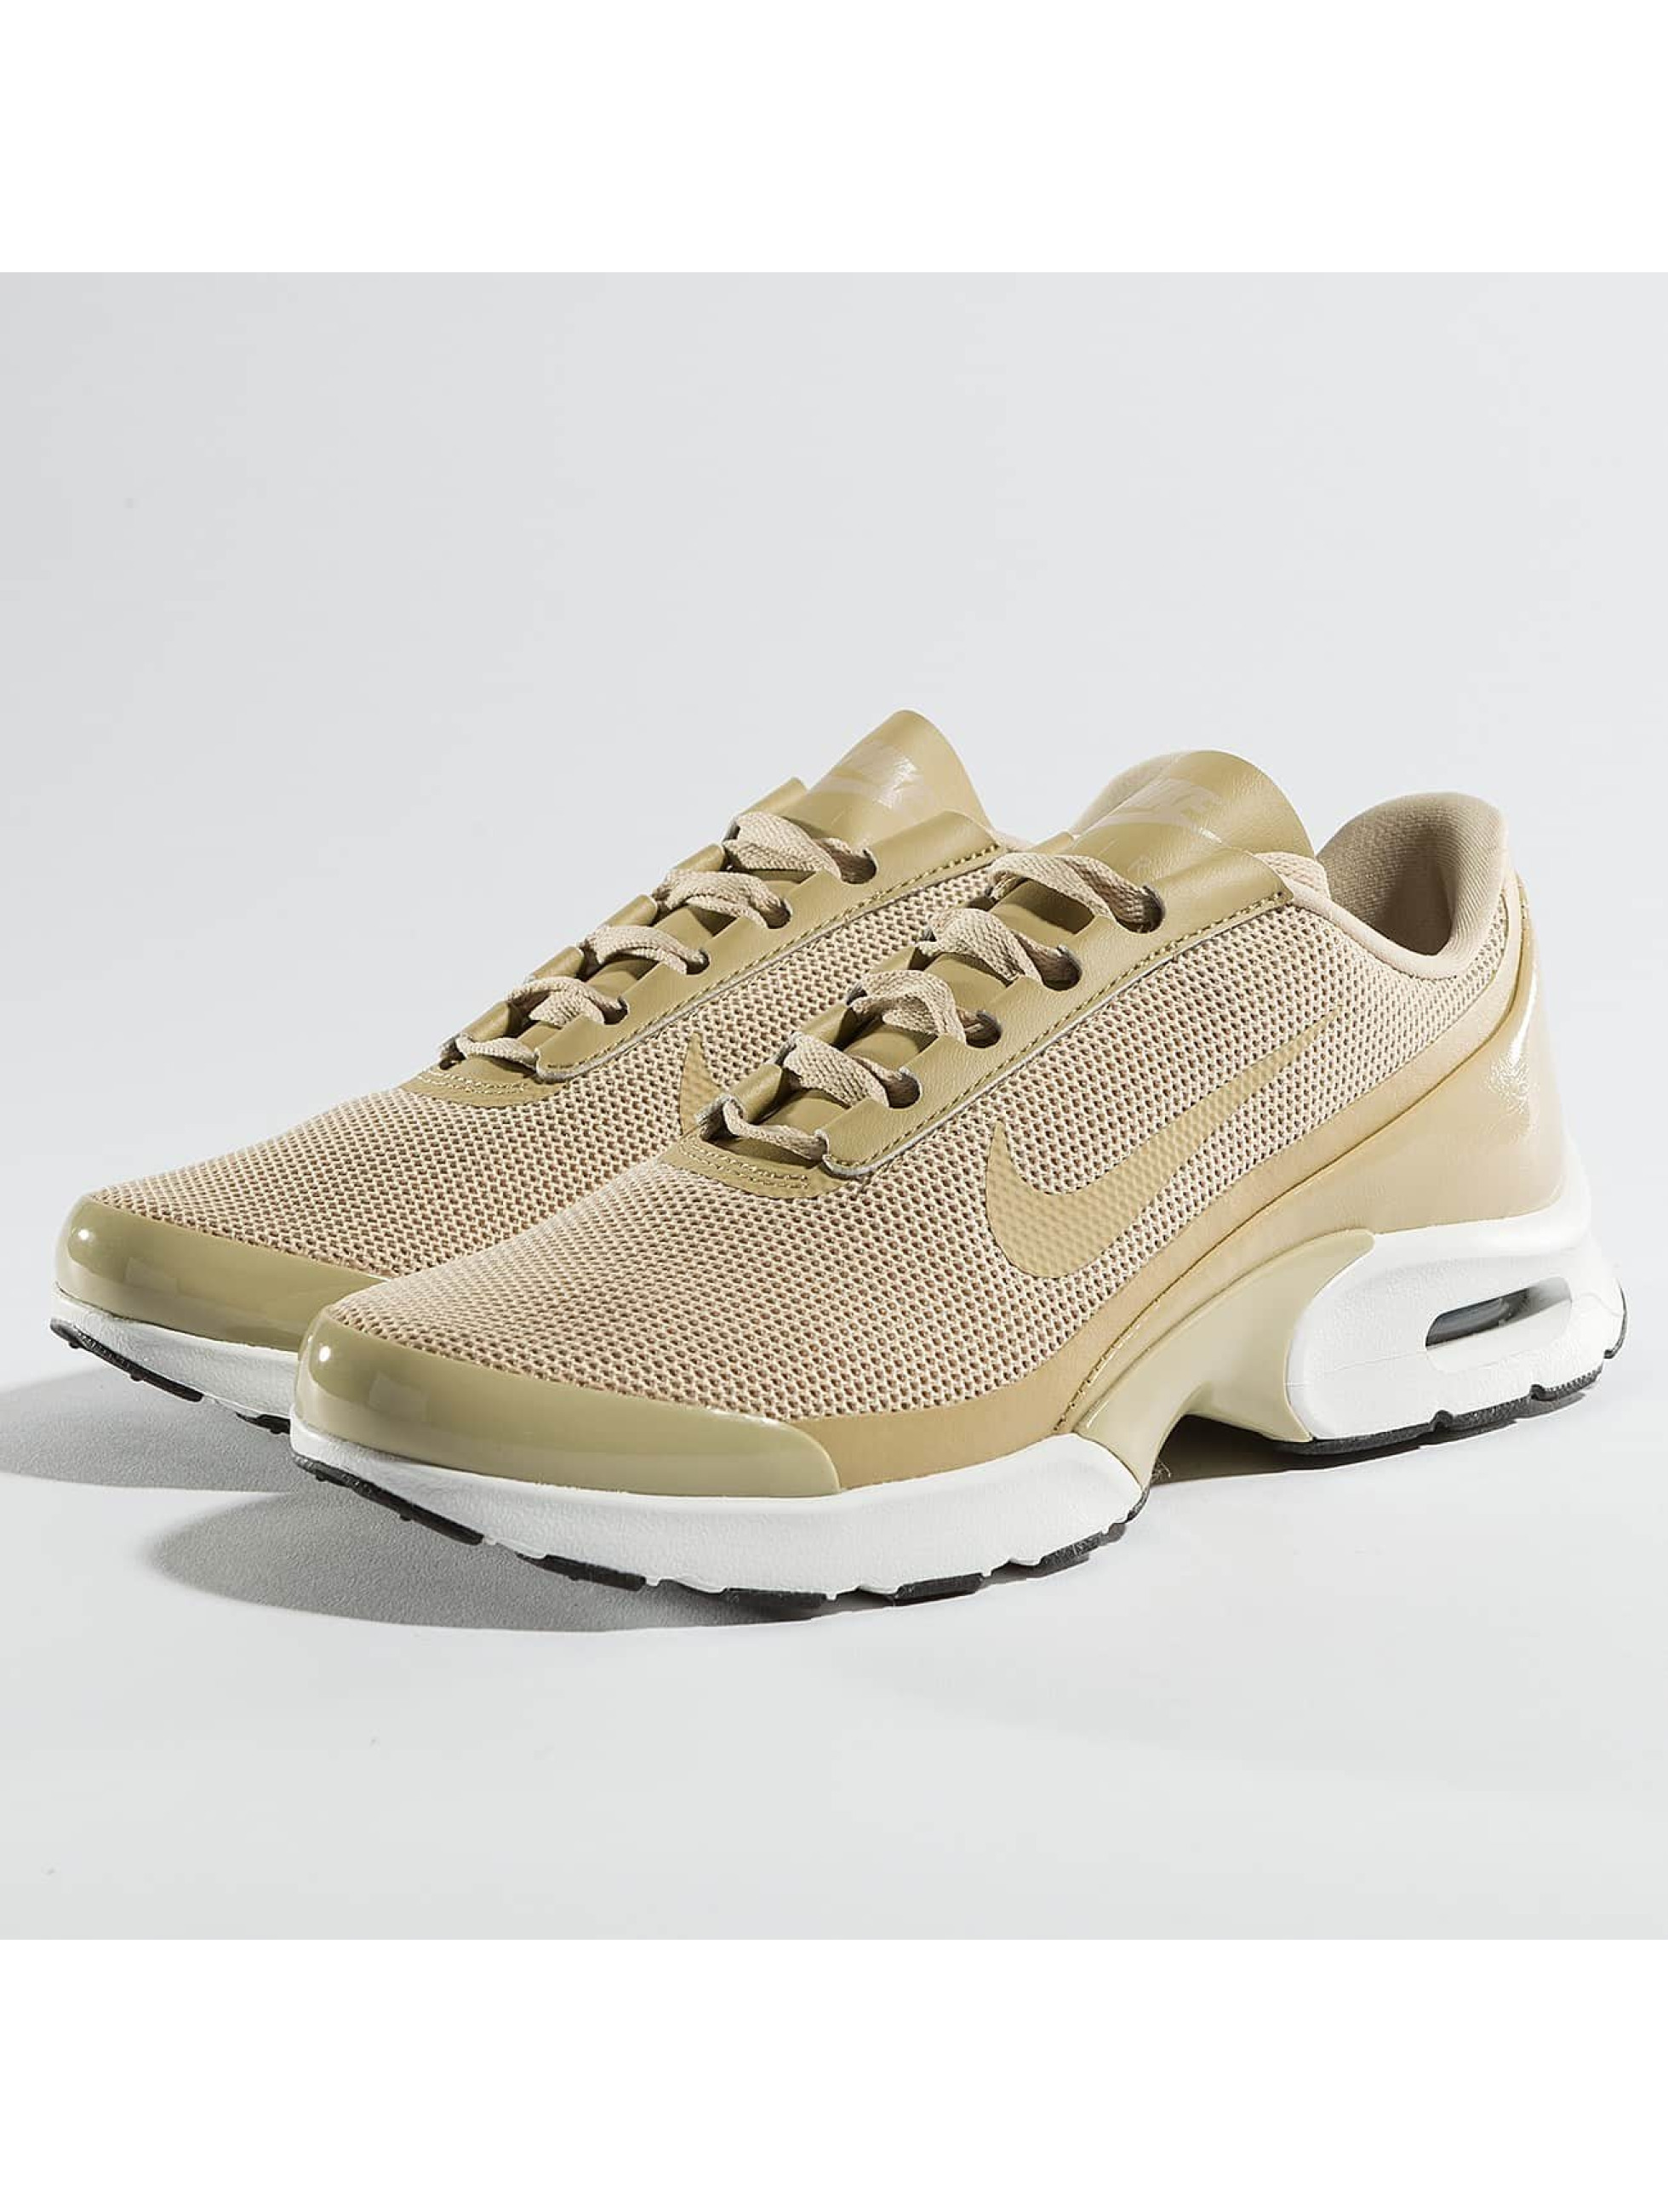 nike air max jewell beige femme baskets nike acheter pas cher chaussures 362740. Black Bedroom Furniture Sets. Home Design Ideas